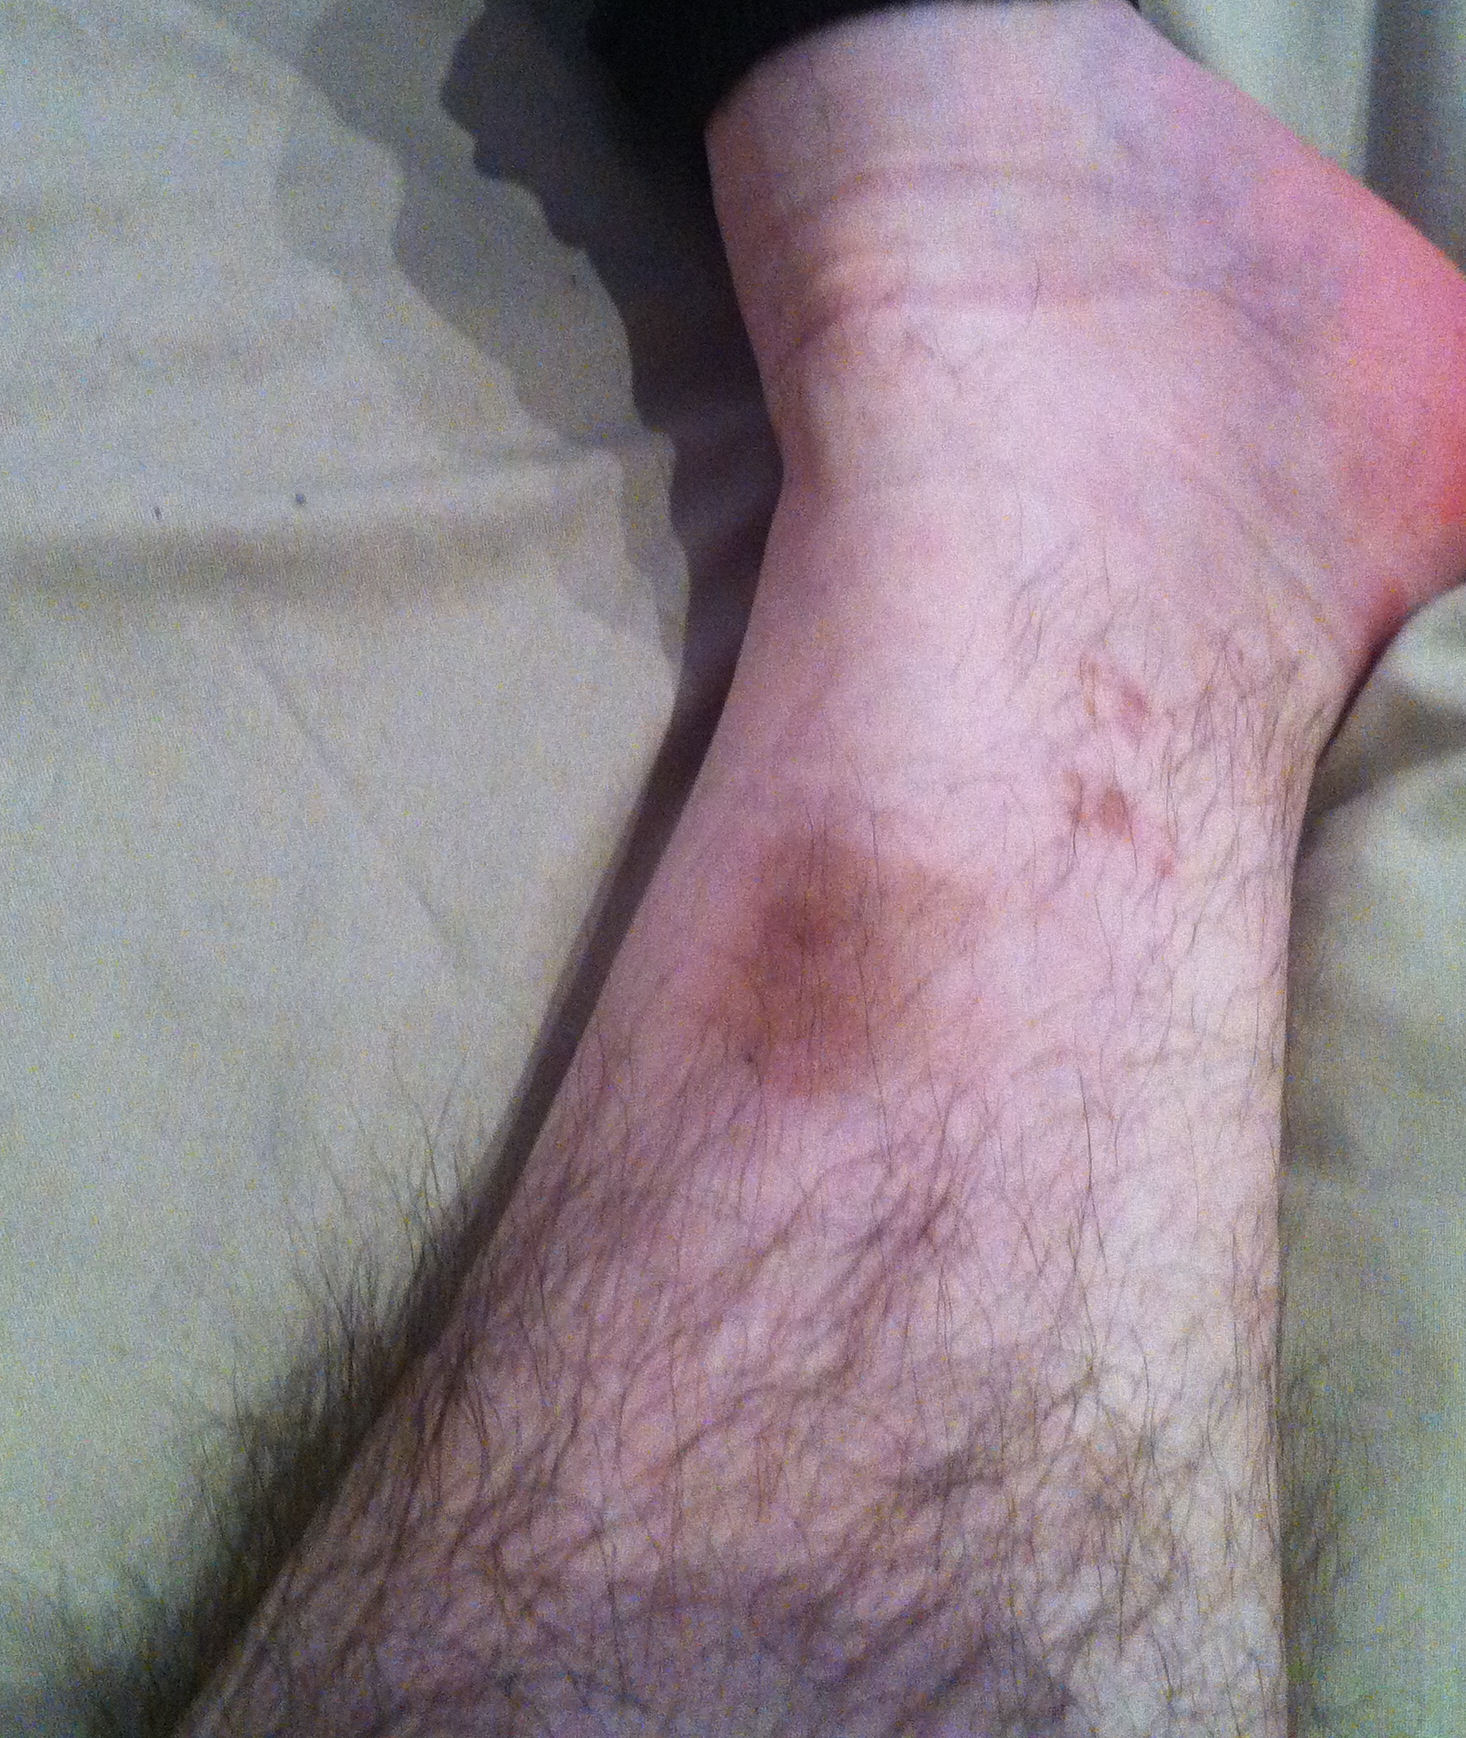 After A Tibial Fracture Img